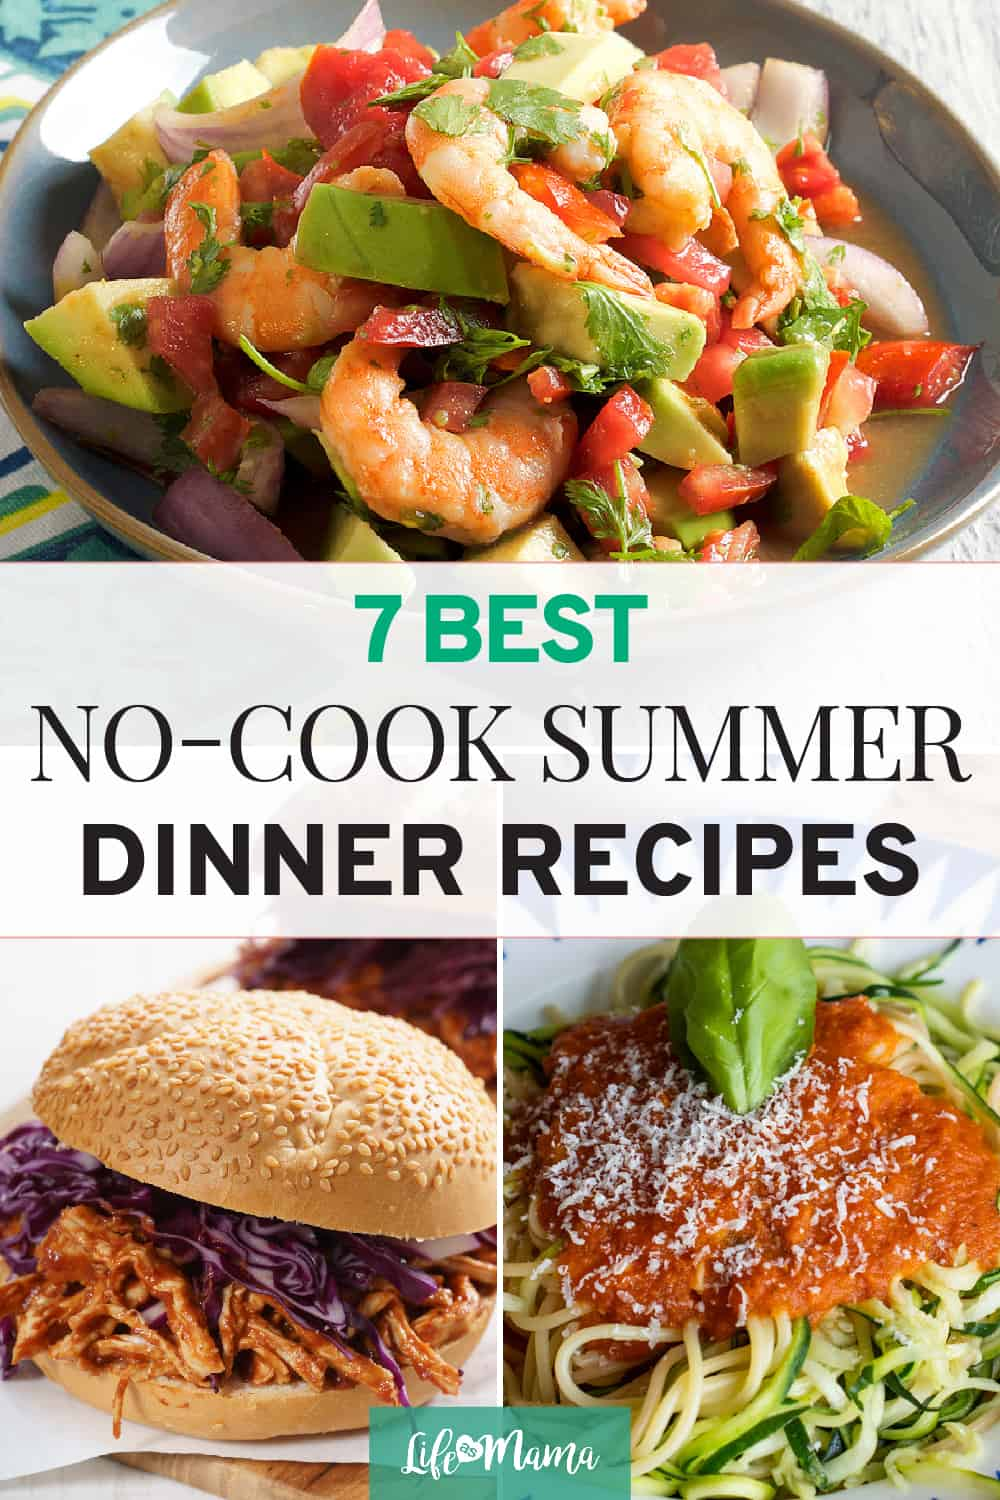 7 No-Cook Summer Dinner Recipes, no-cook dinners